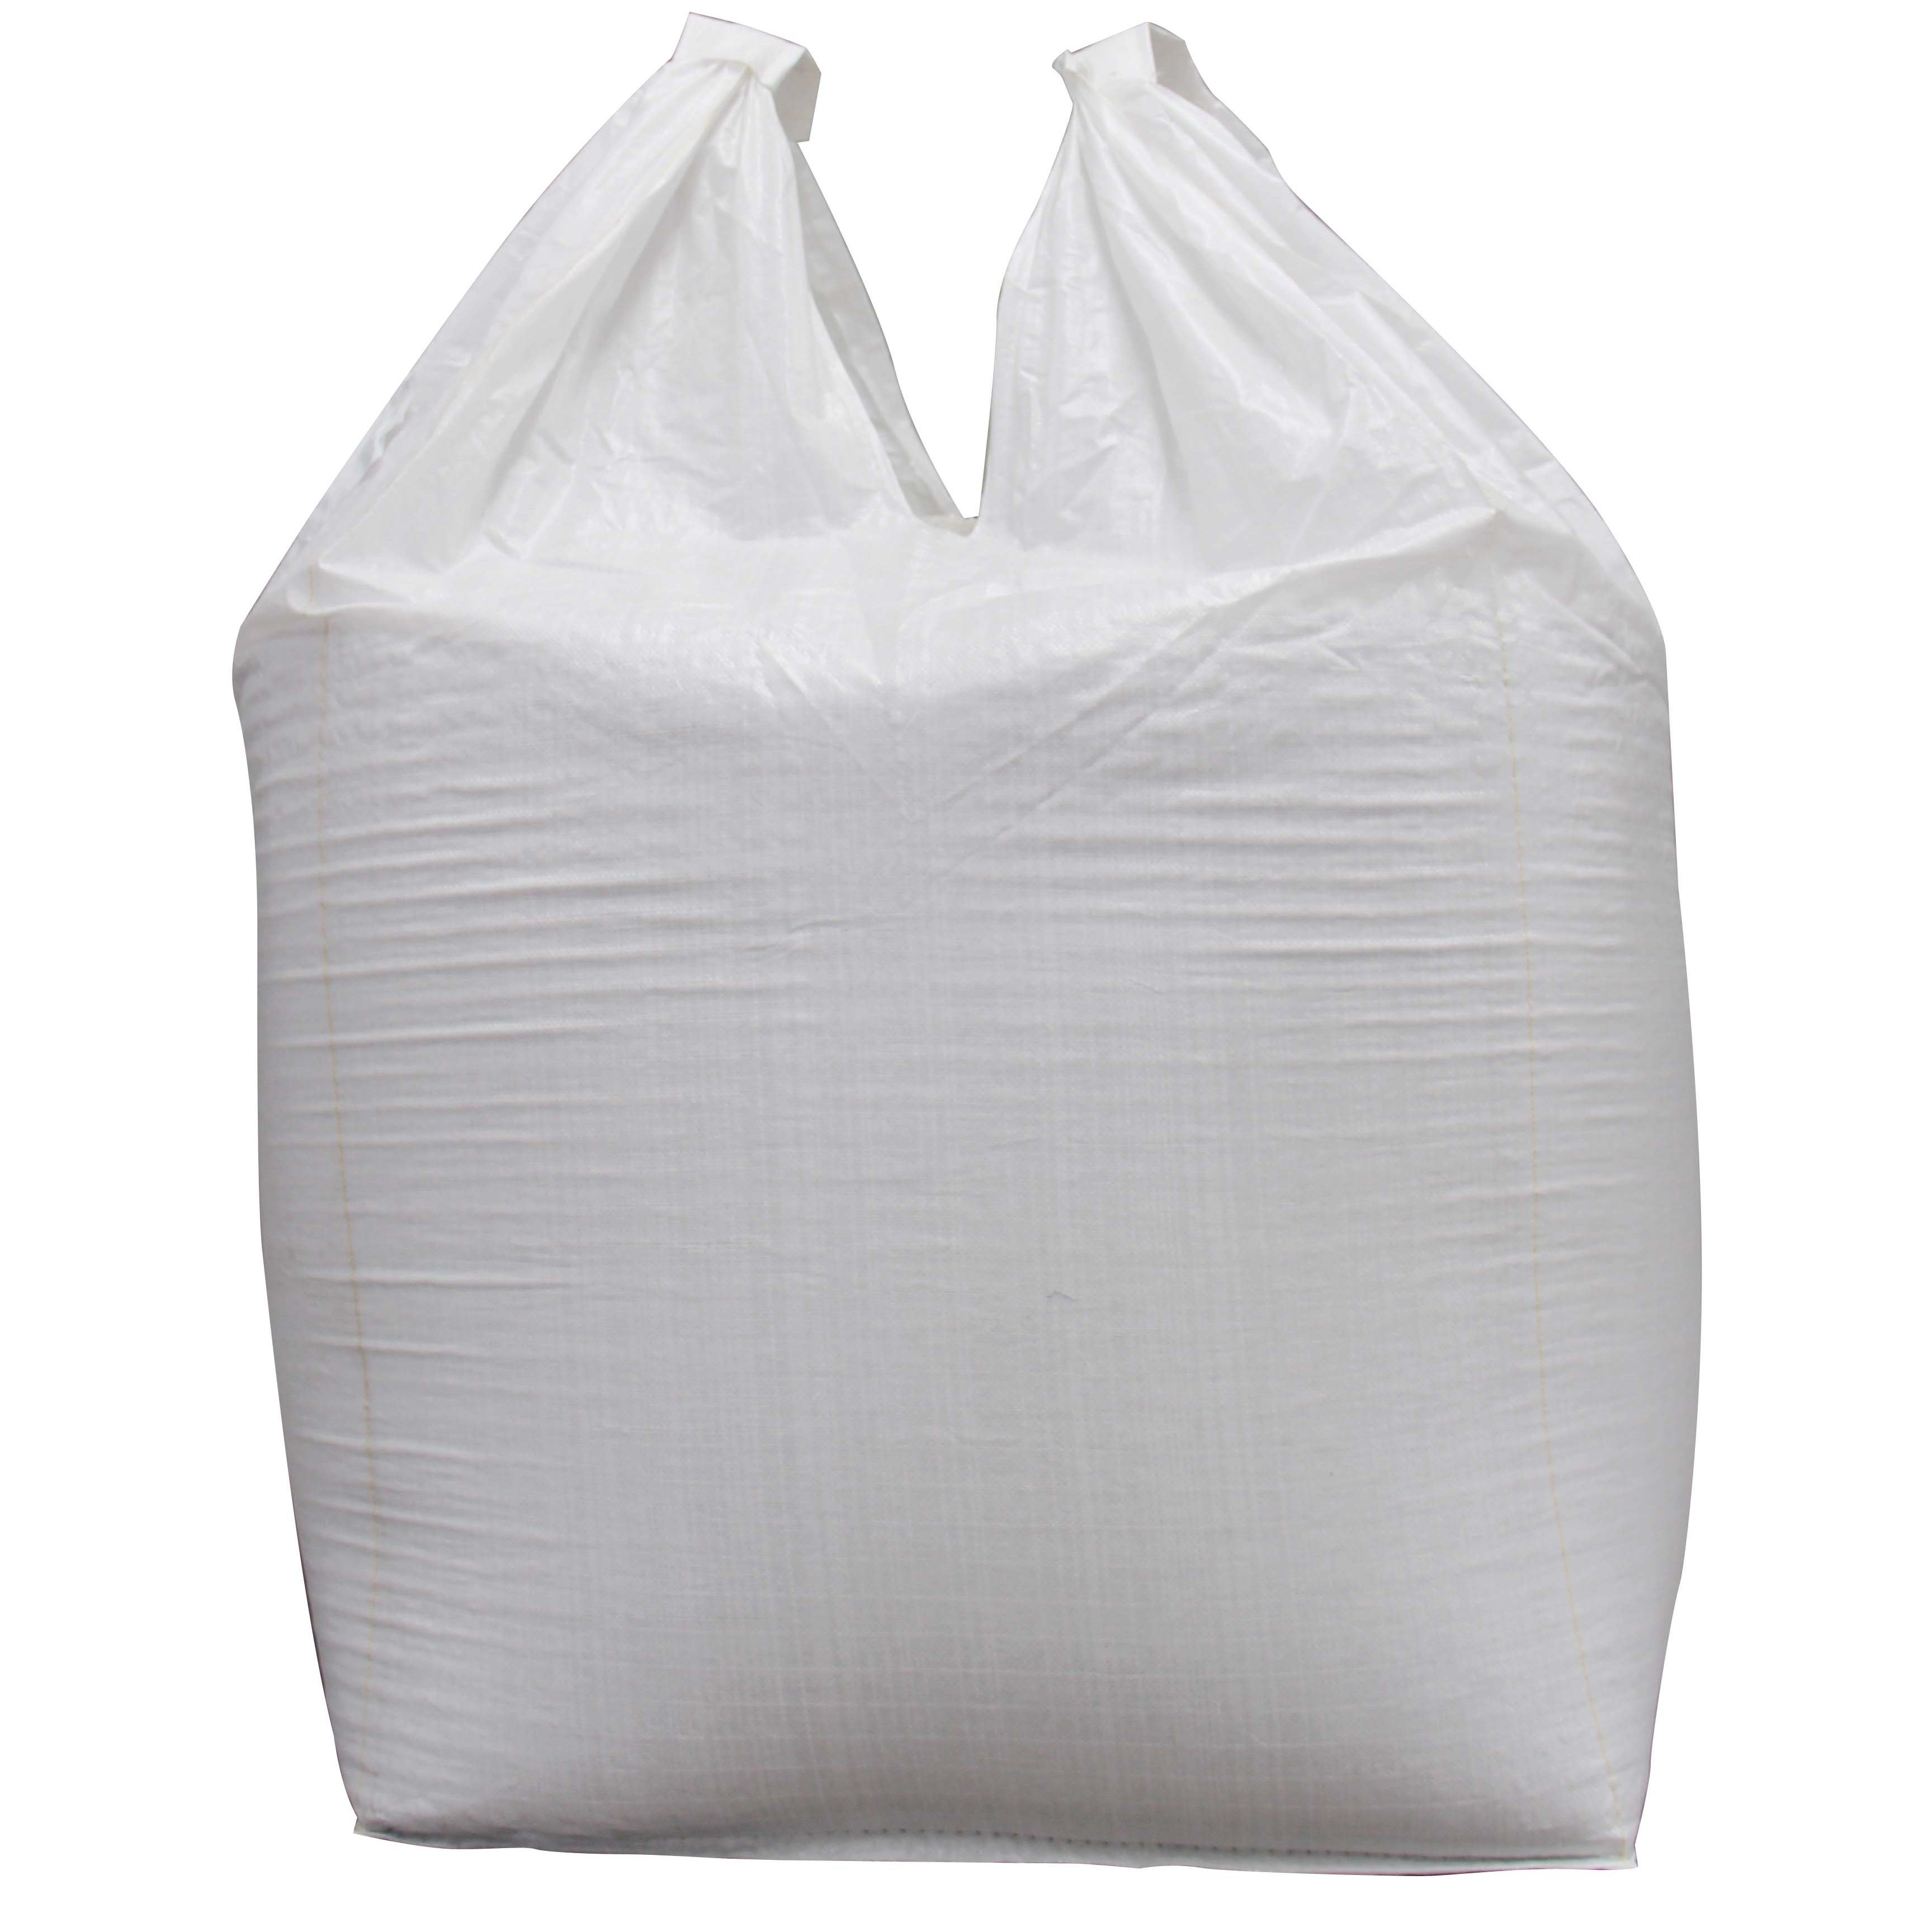 2 ton fabric PP big bulk bag packing for corn and other agriculture or cement easy handle more resistance safety factor 6:1